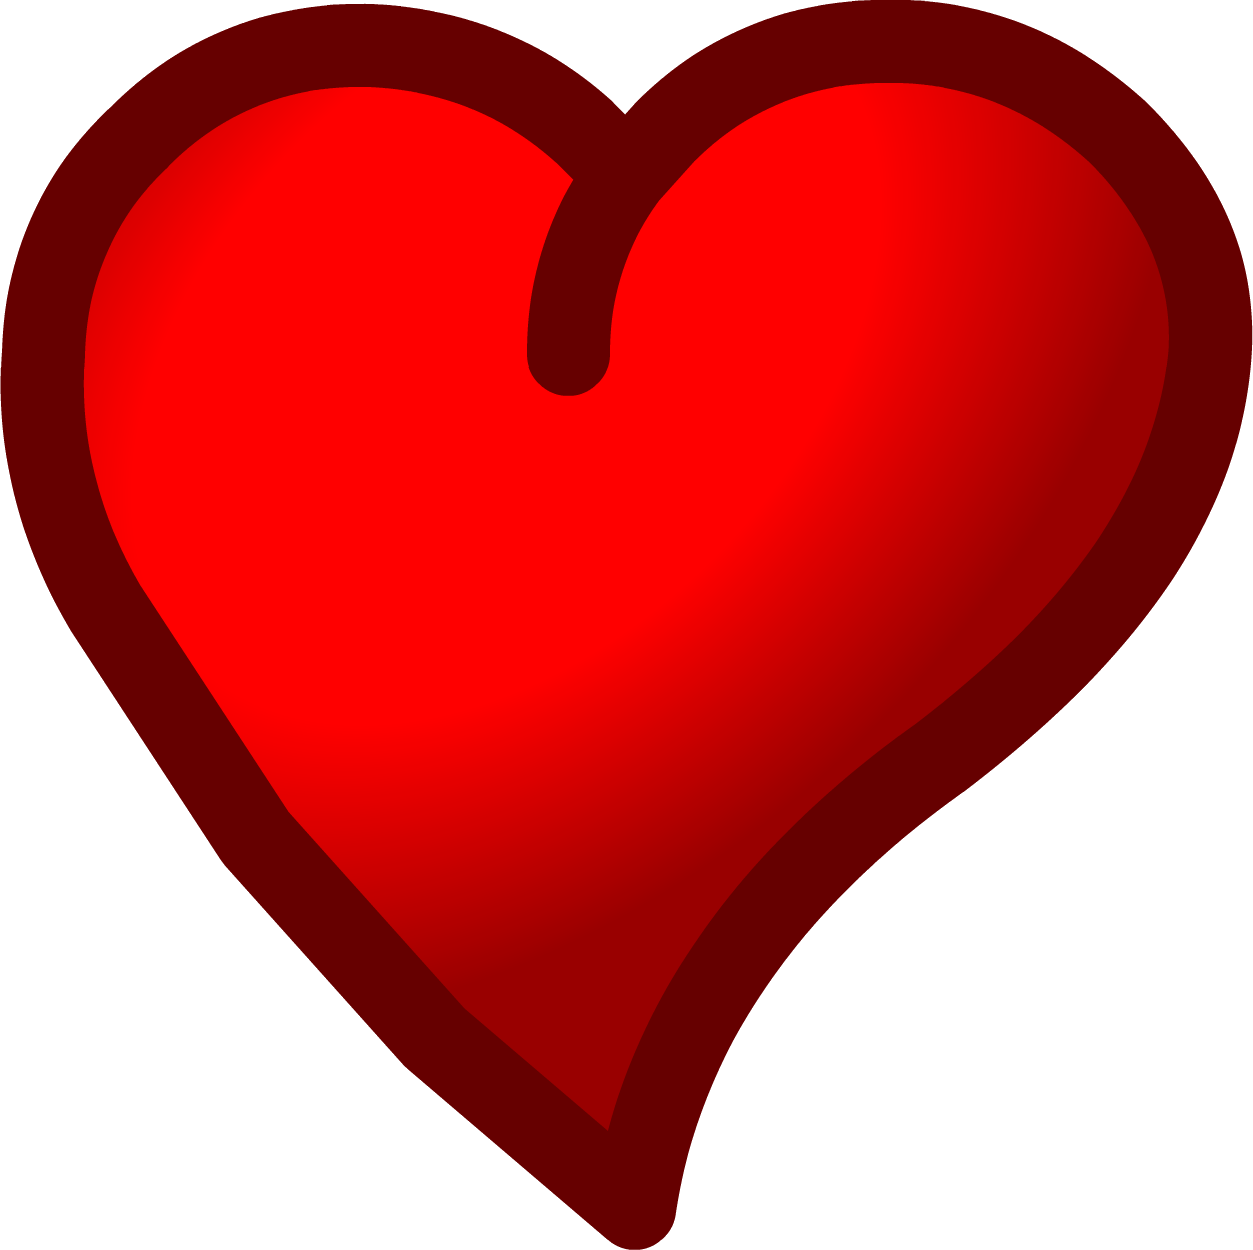 Image Heart Emoticong Club Penguin Wiki Fandom Powered By Wikia